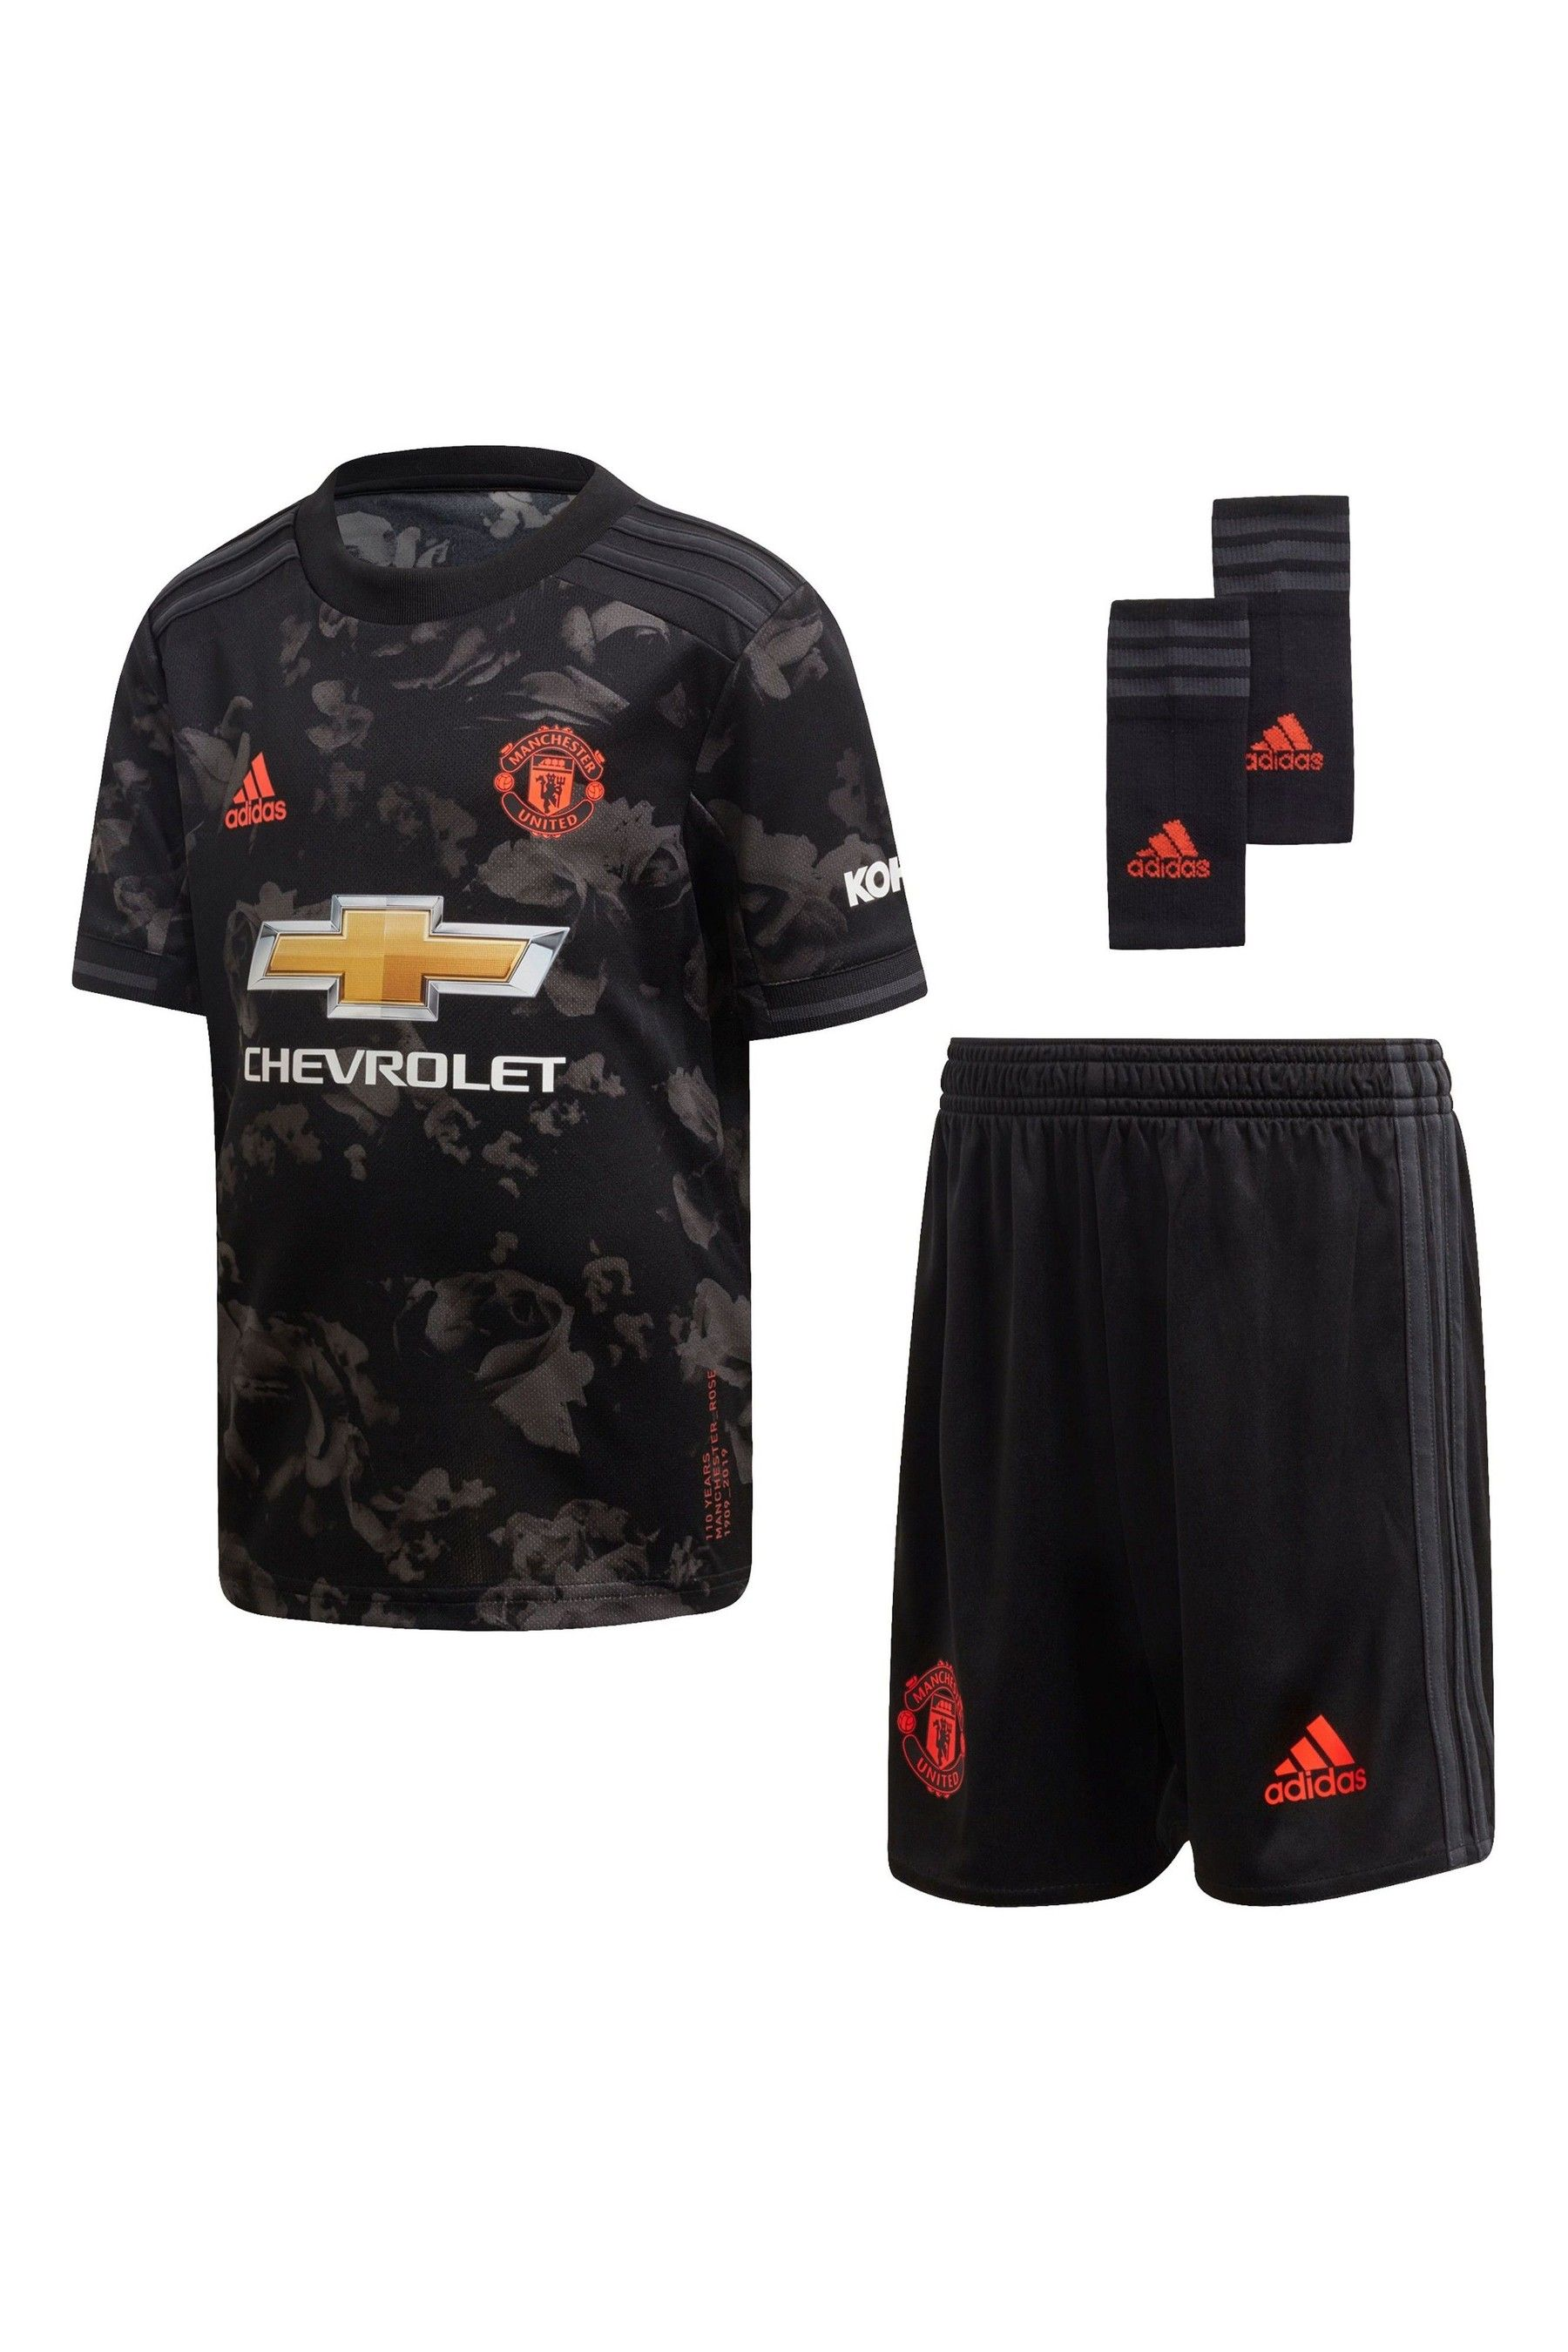 Boys Adidas Black Manchester United 2019 2020 Mini Kit Infant Black Black Adidas Manchester United Mini Footballs